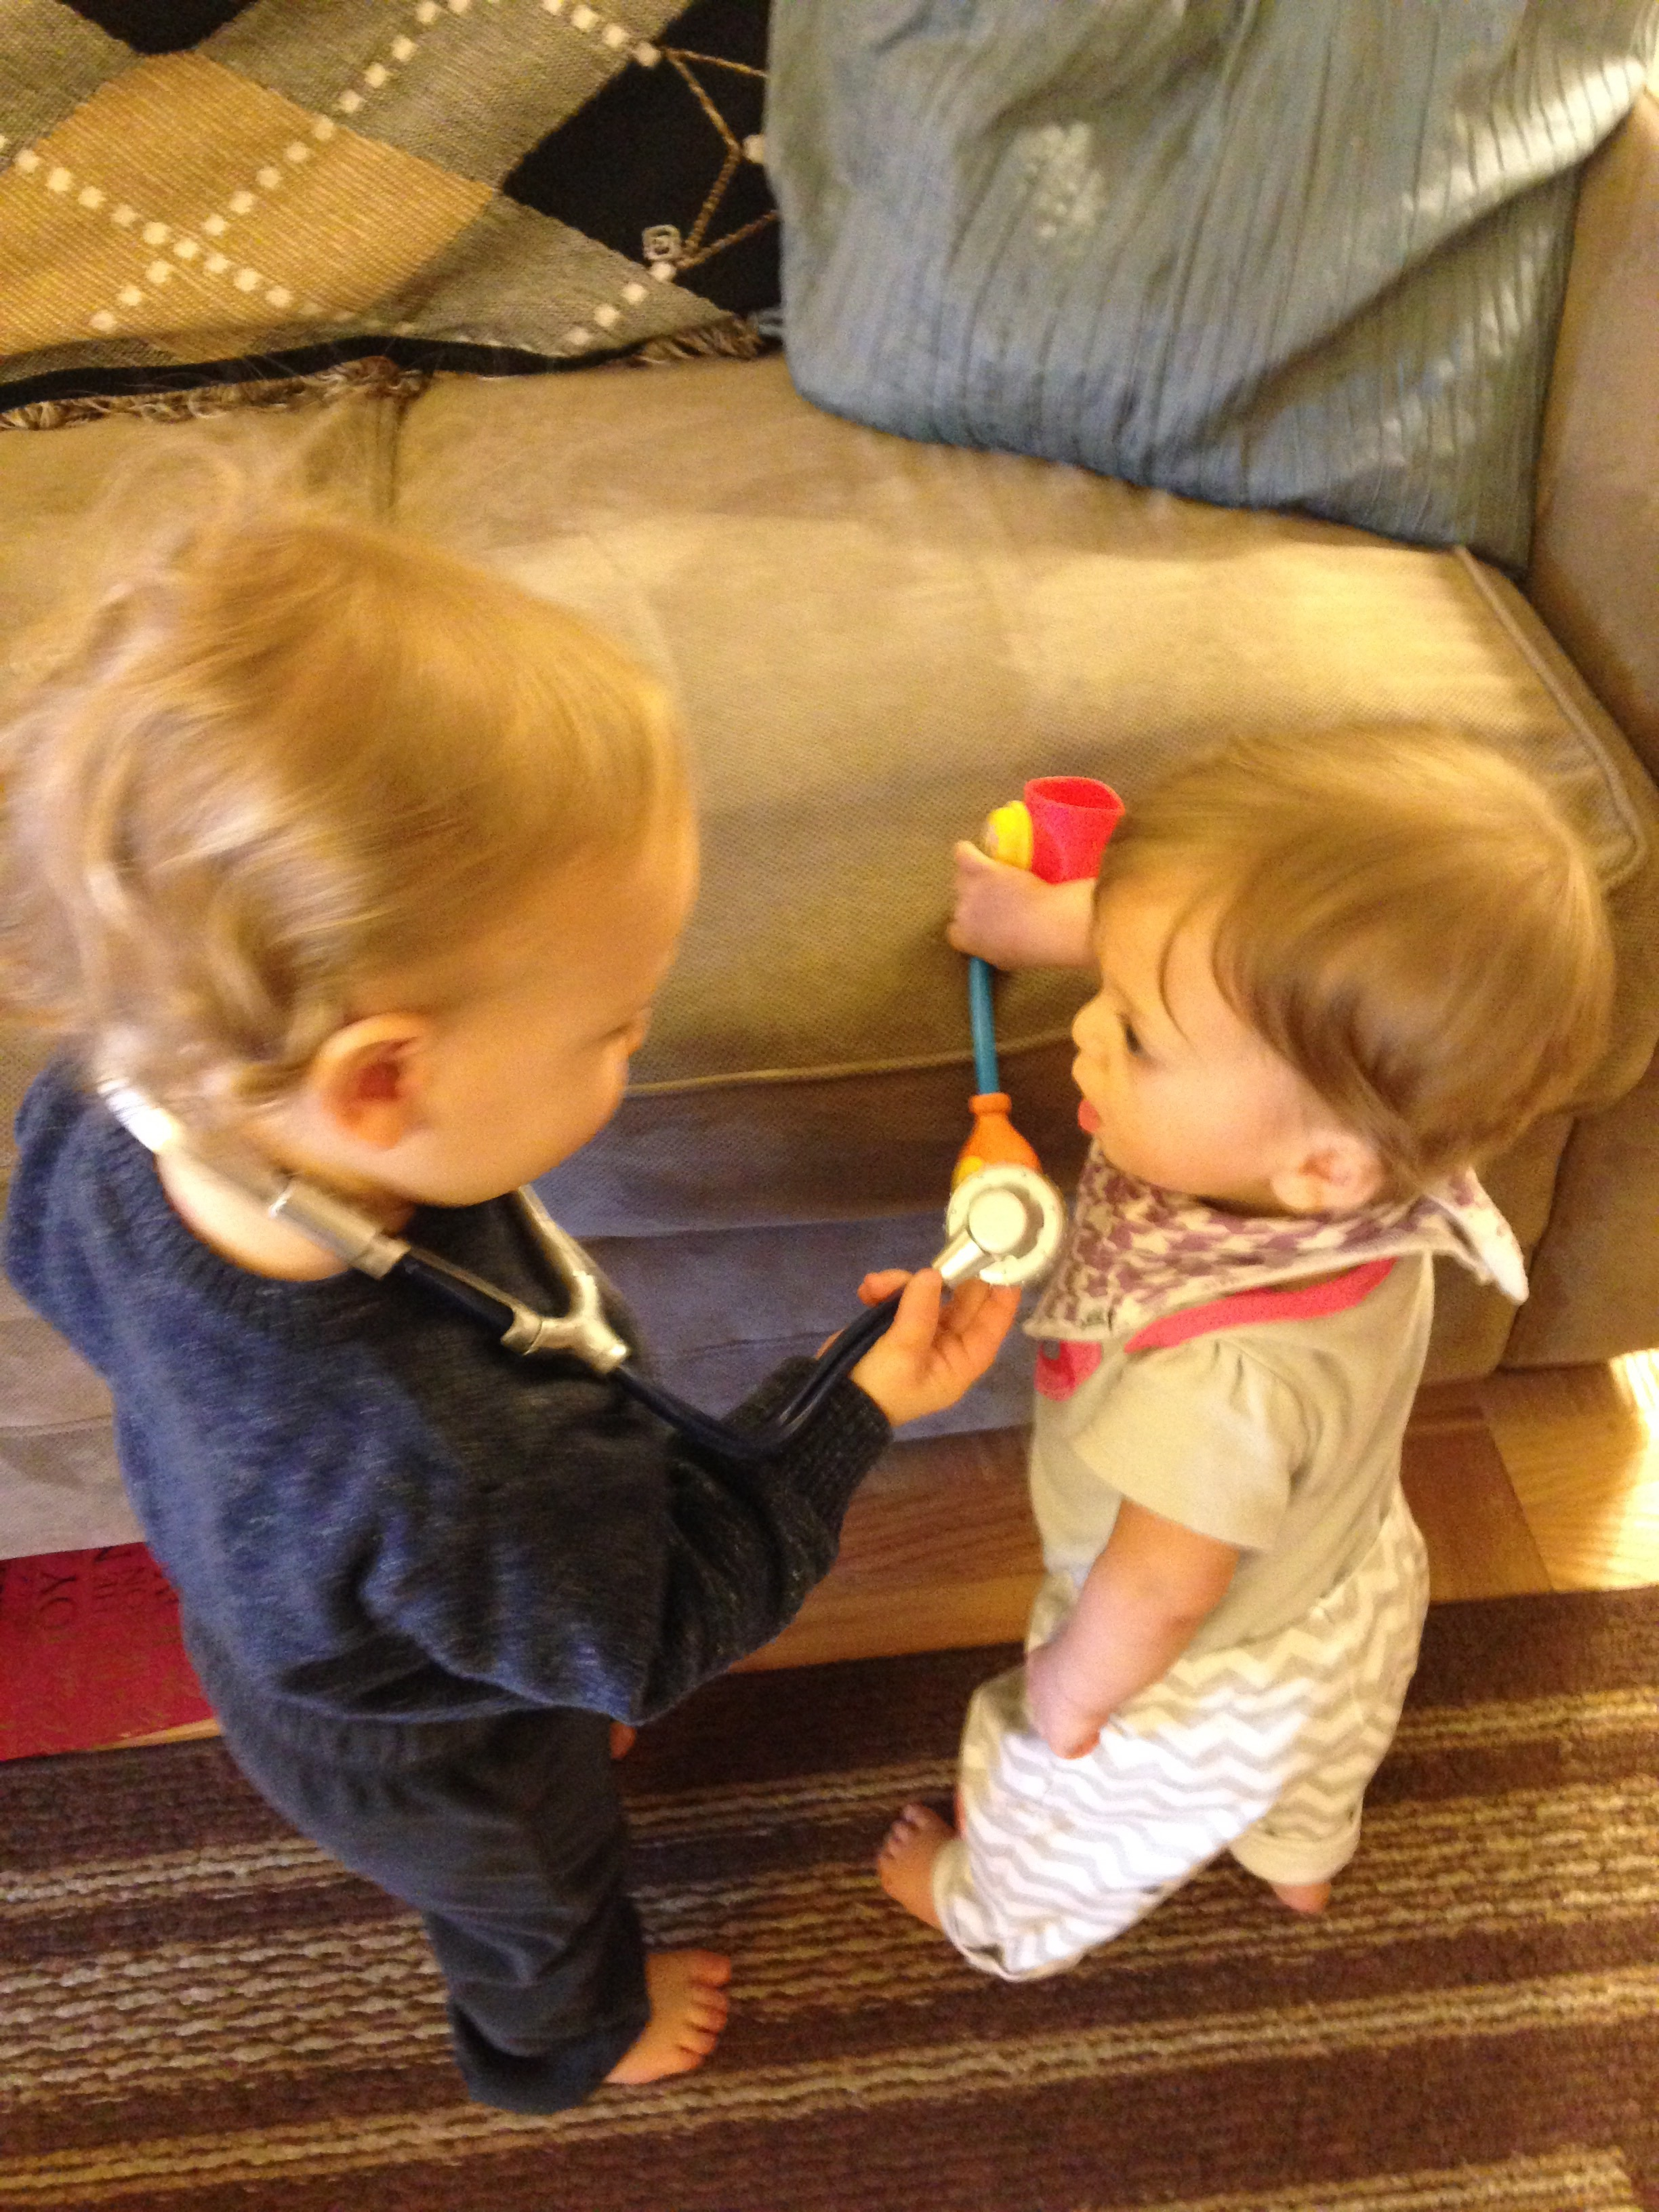 Playing 'Doctor' with her friend Luke!